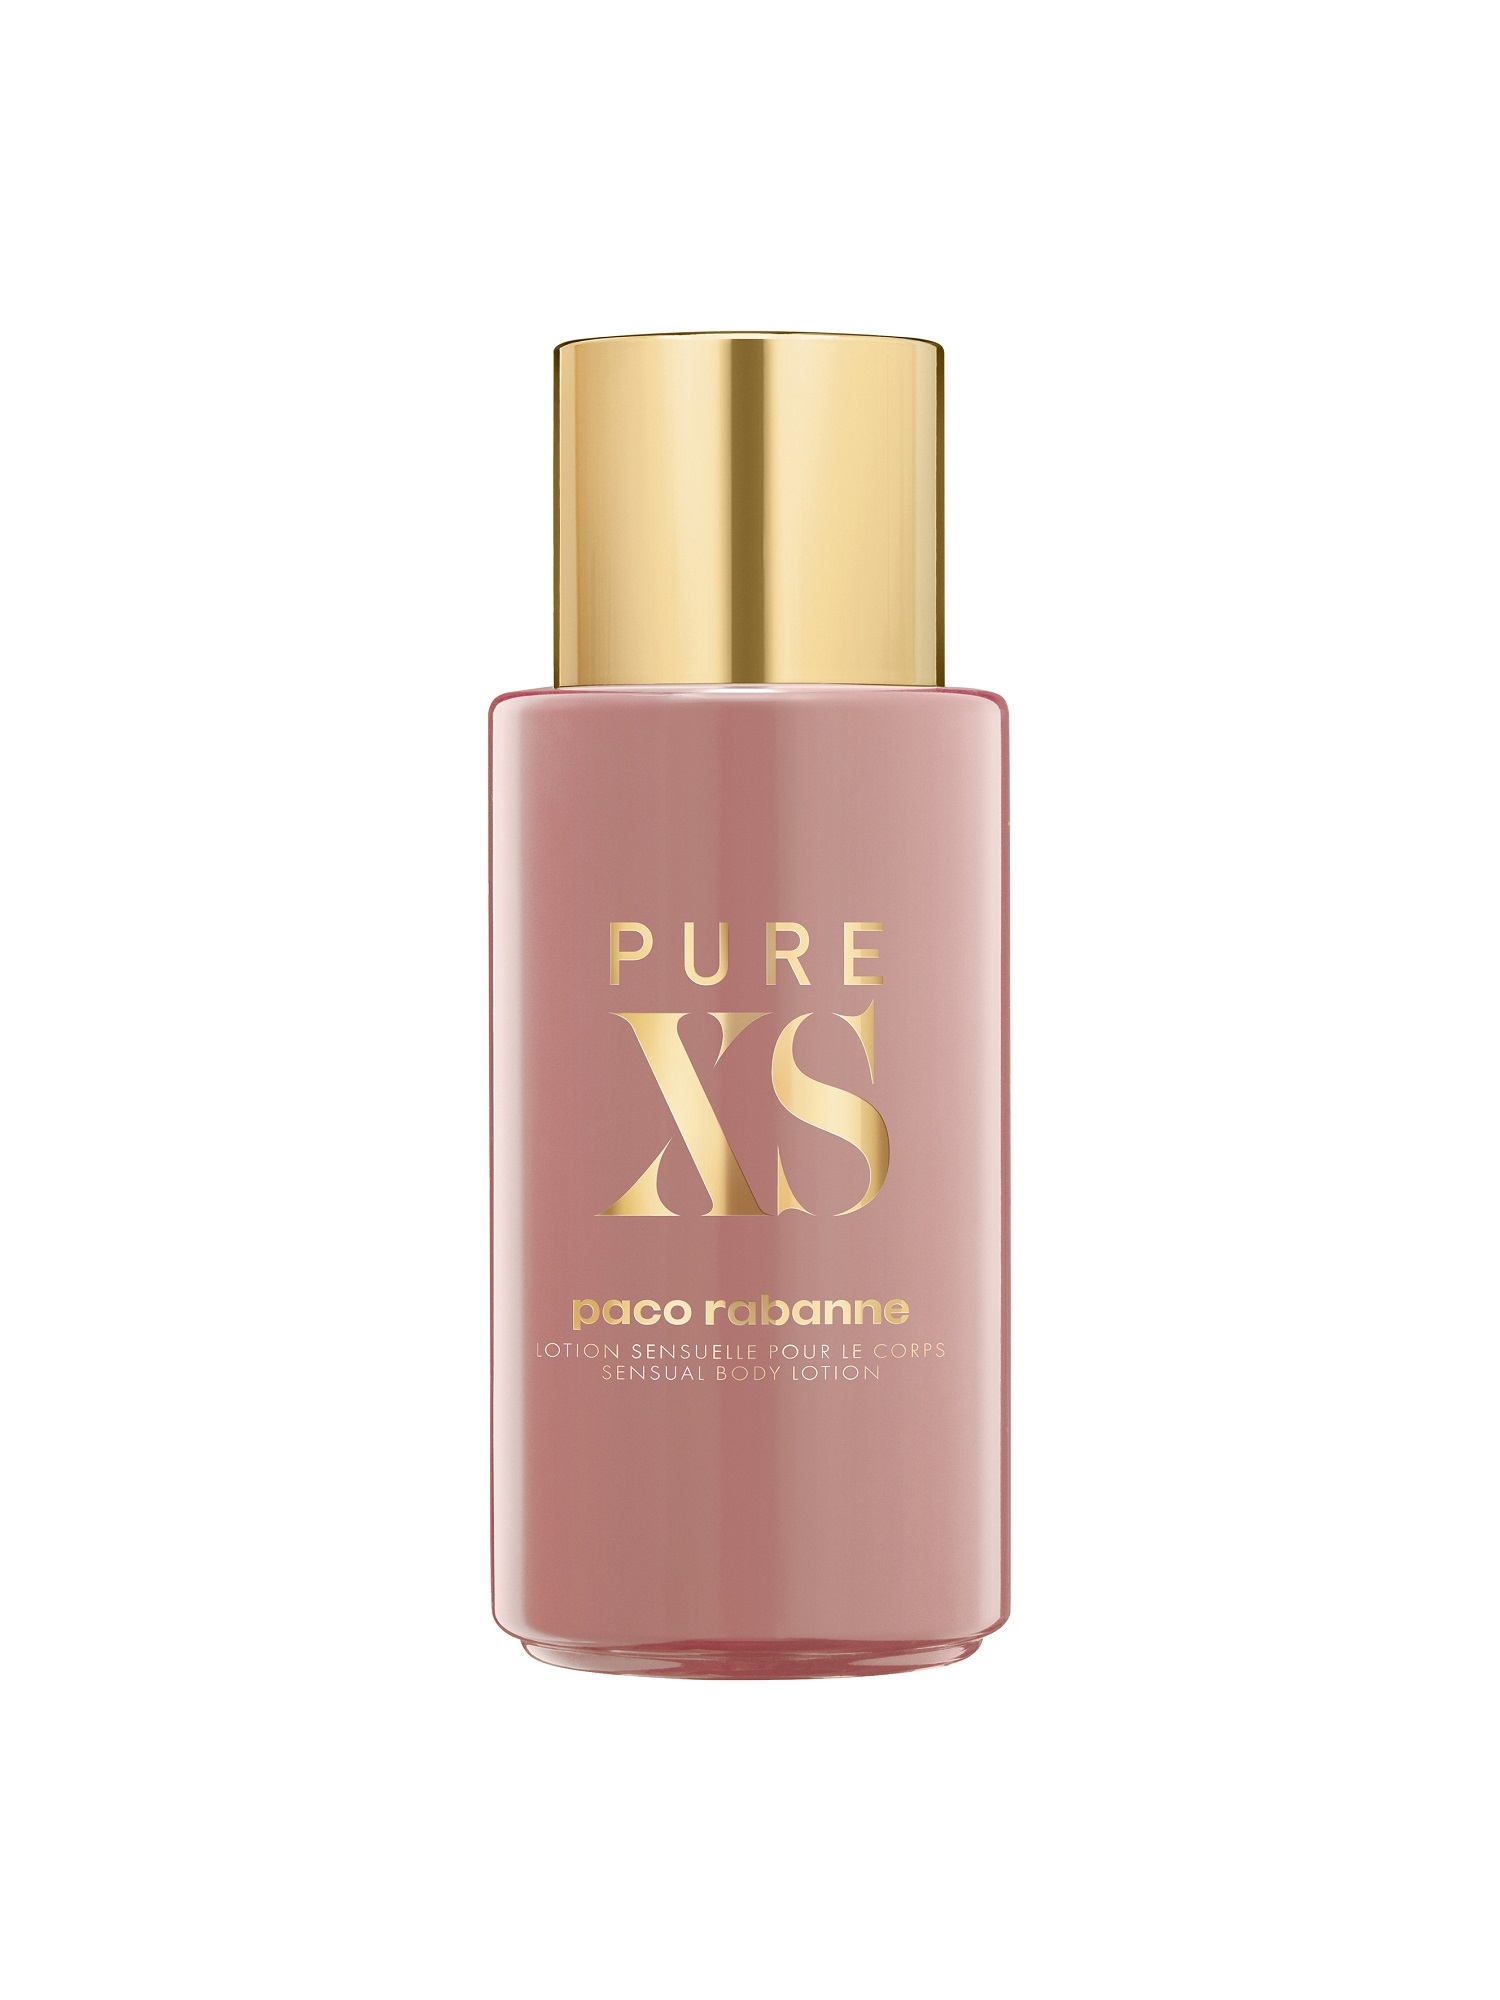 Paco Rabanne Pure XS For Her Body Lotion 150ml